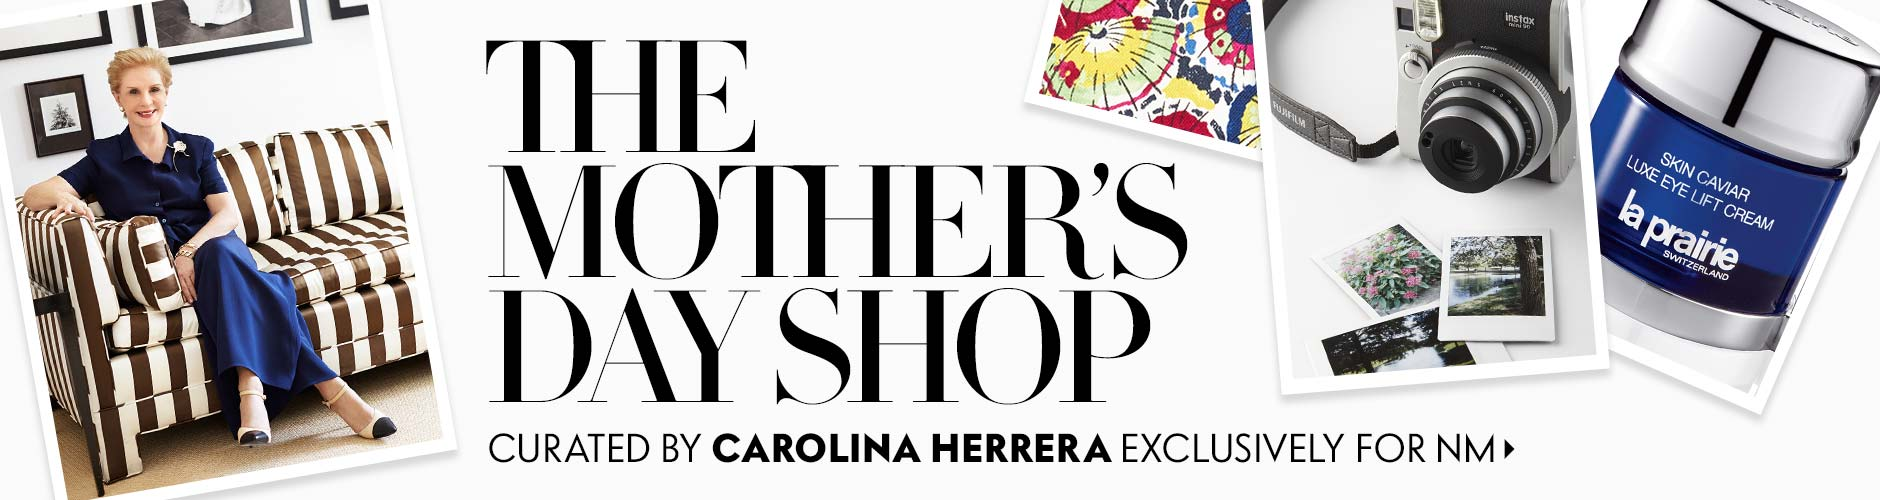 Carolina Herrera Mother's Day